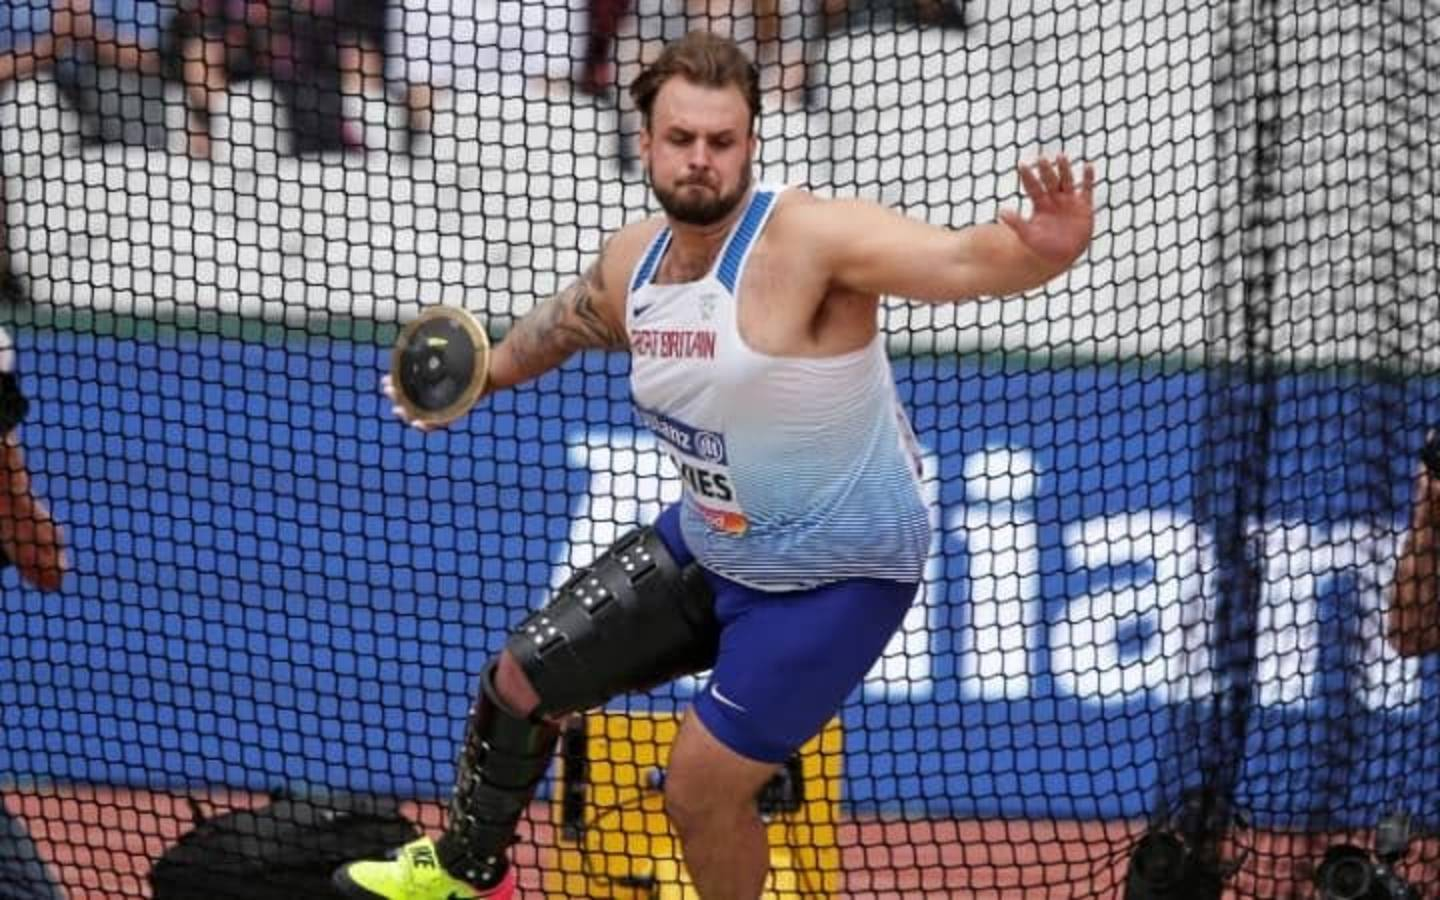 Athlete Aled Davies throwing discus at World Para Athletics Championships